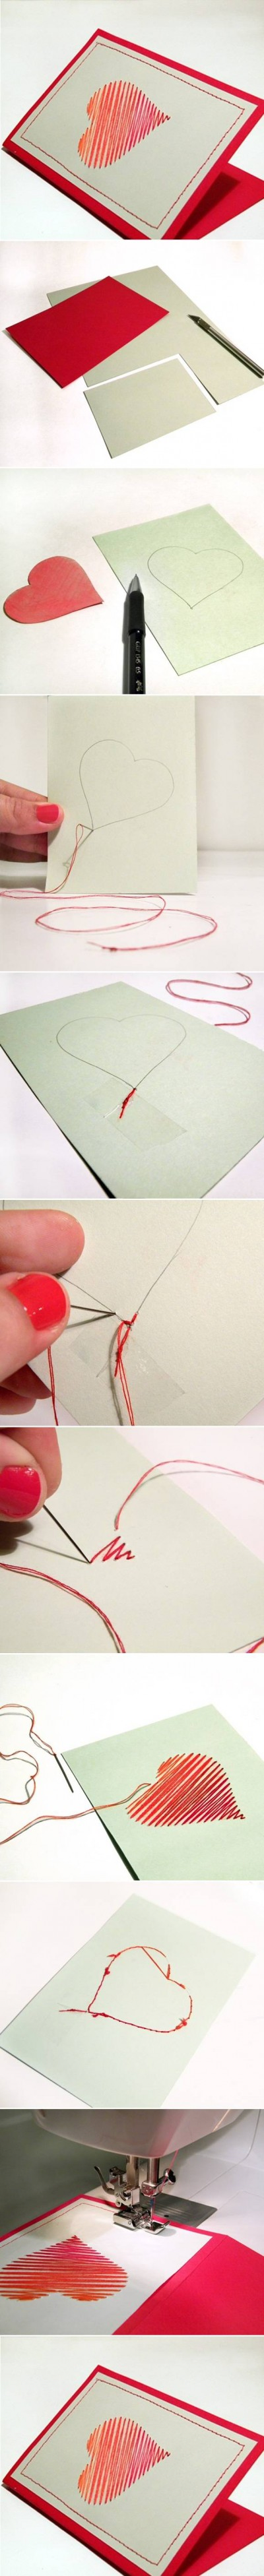 How to make Sew Heart Card step by step DIY instructions